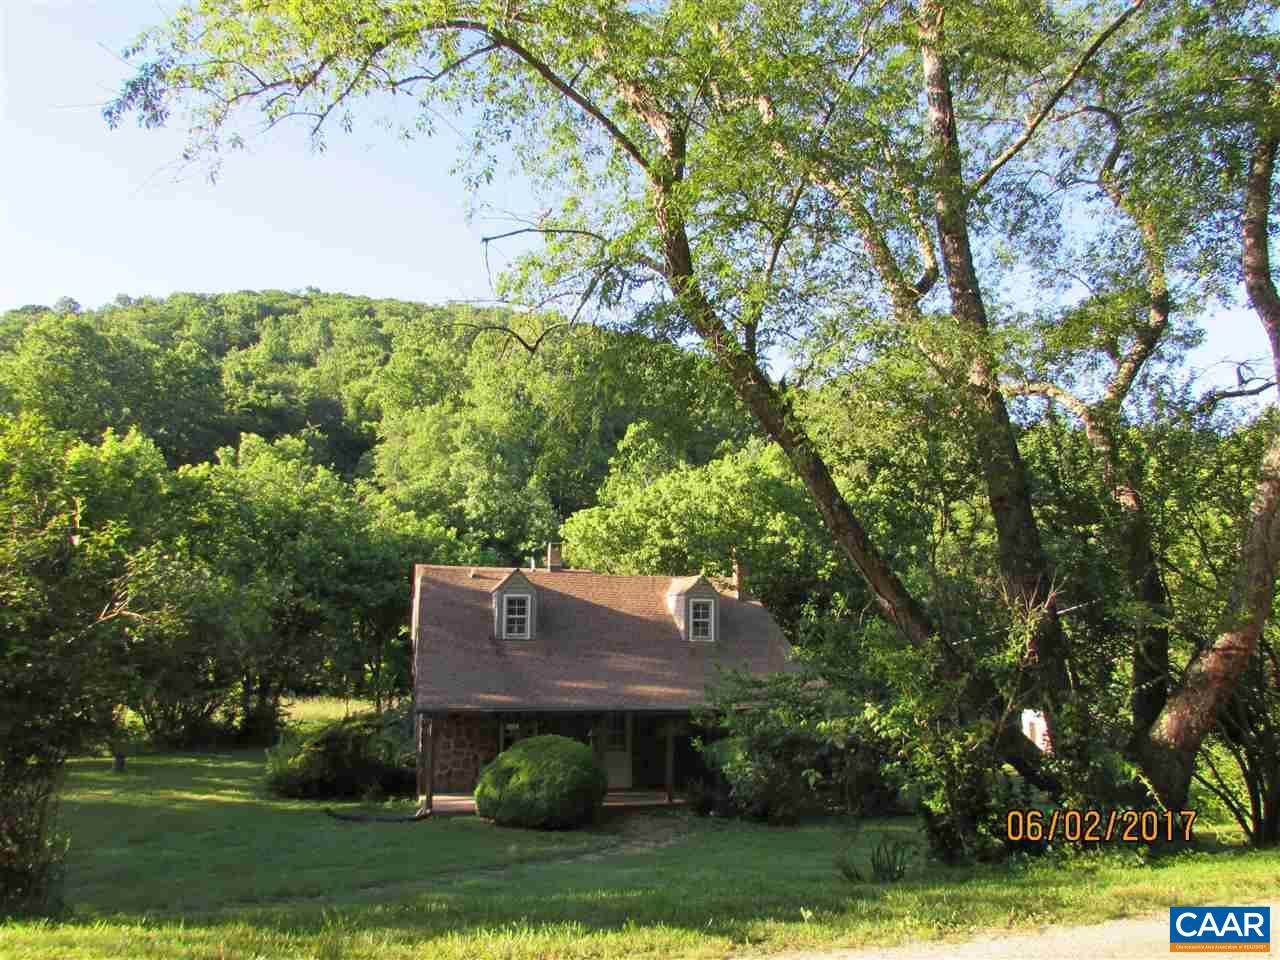 668 PETERS HOLLOW RD, MONROE, VA 24574